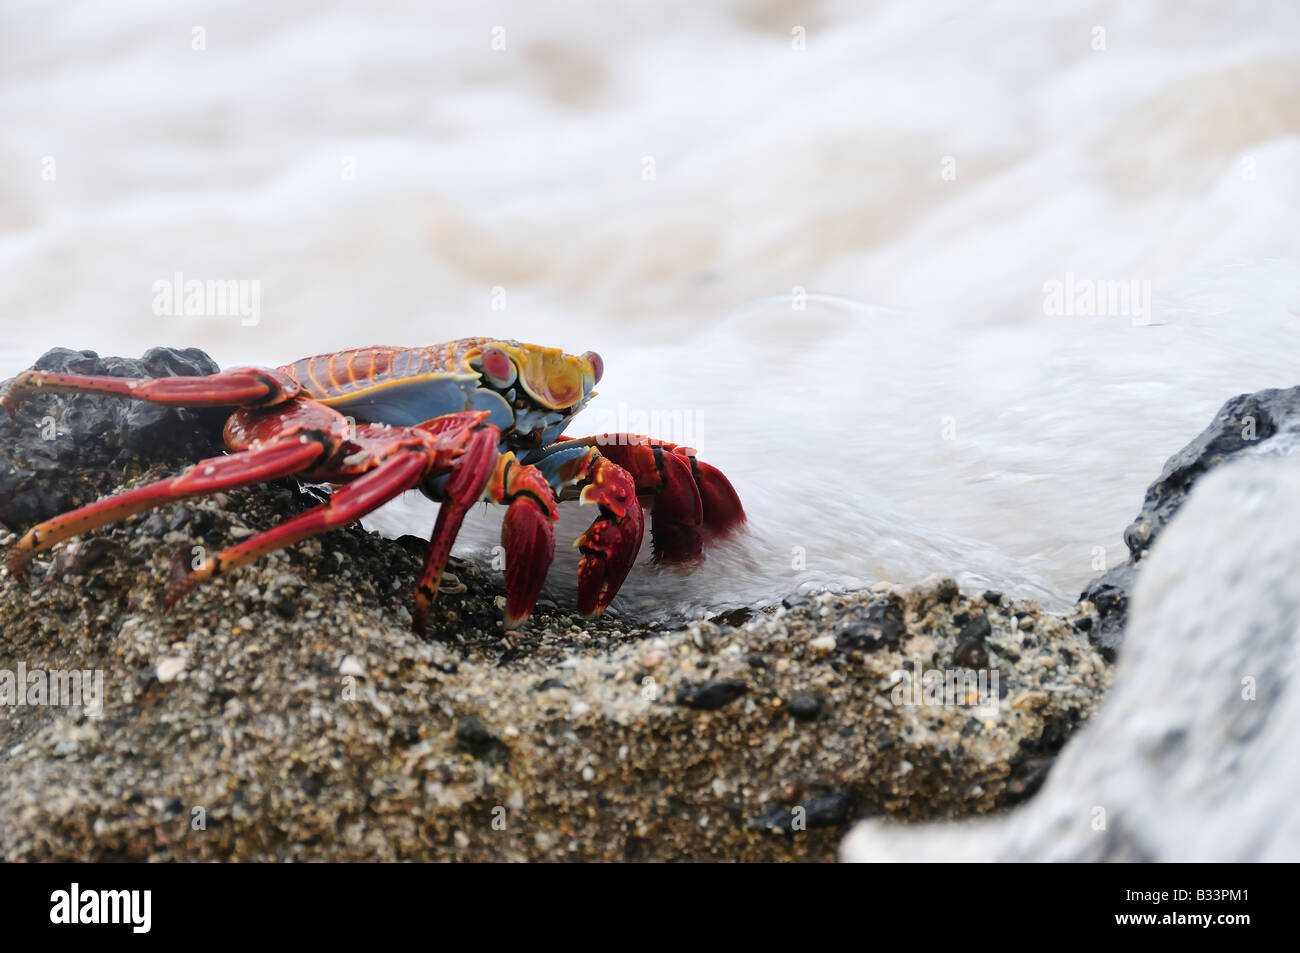 A red rock crab, also known as a Sally Lightfoot or Grapsus grapsus crab, surrounded by foamy surf. - Stock Image